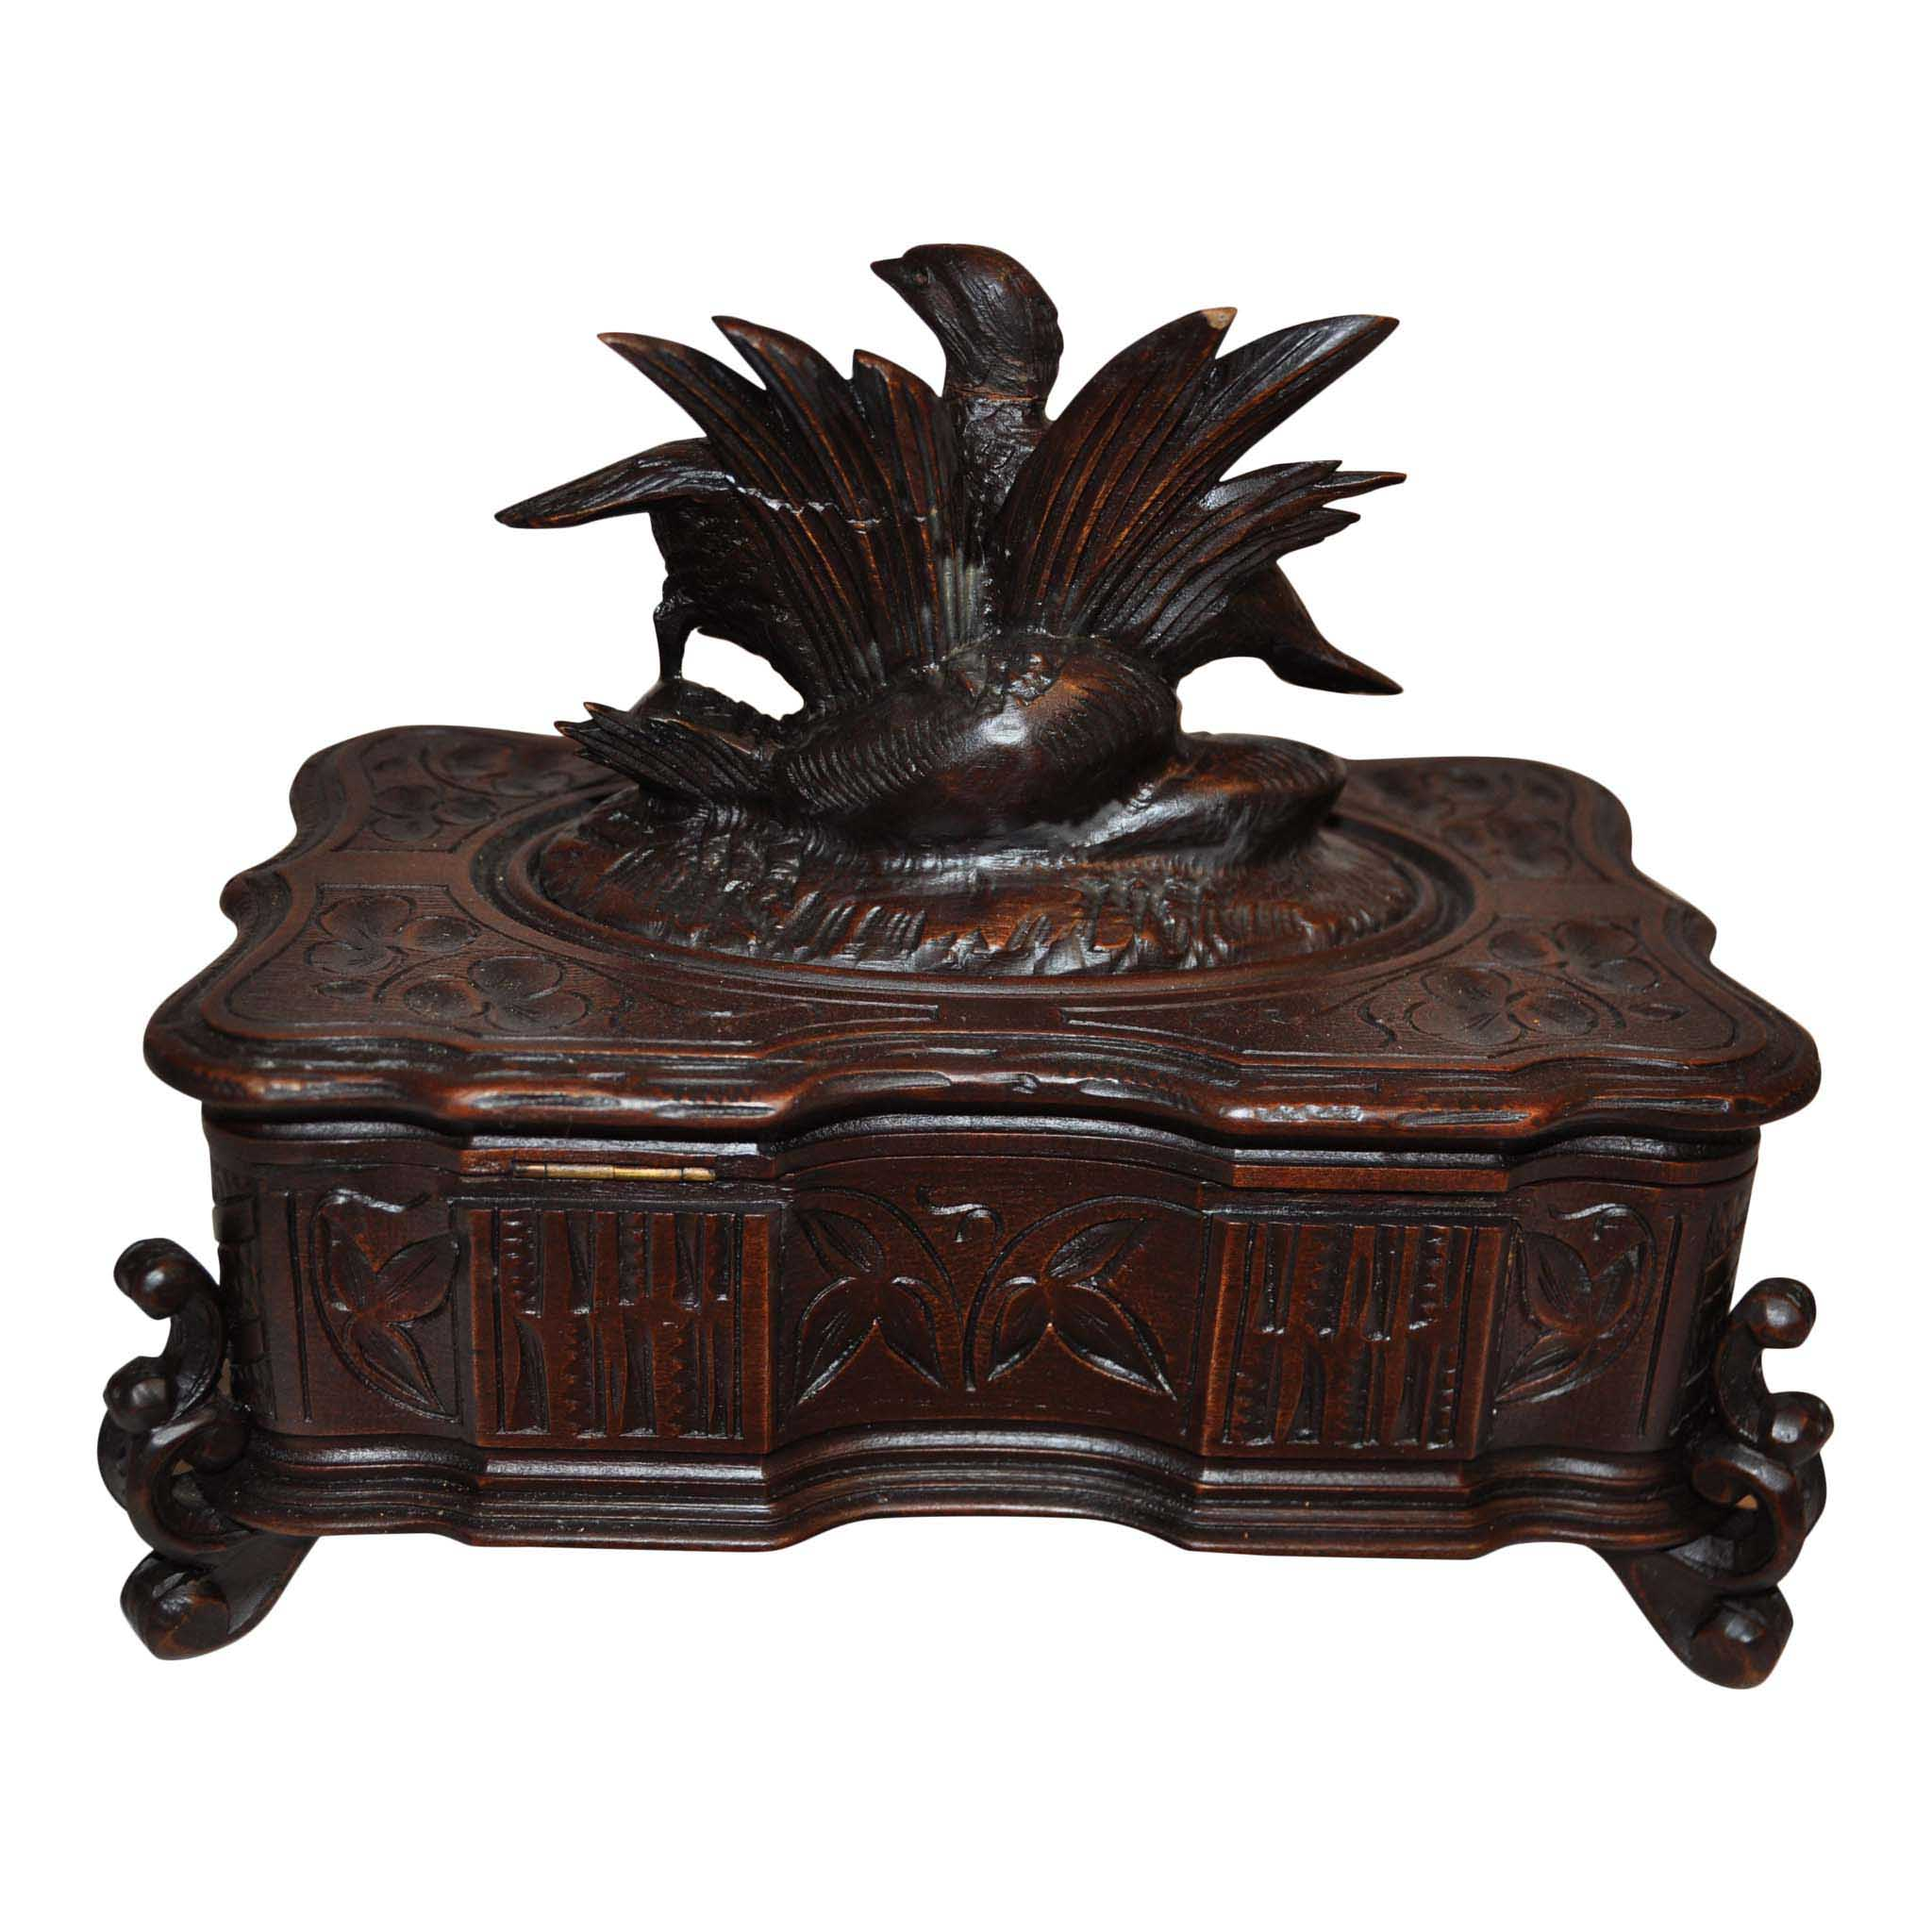 Carved Jewelry Box with Quail